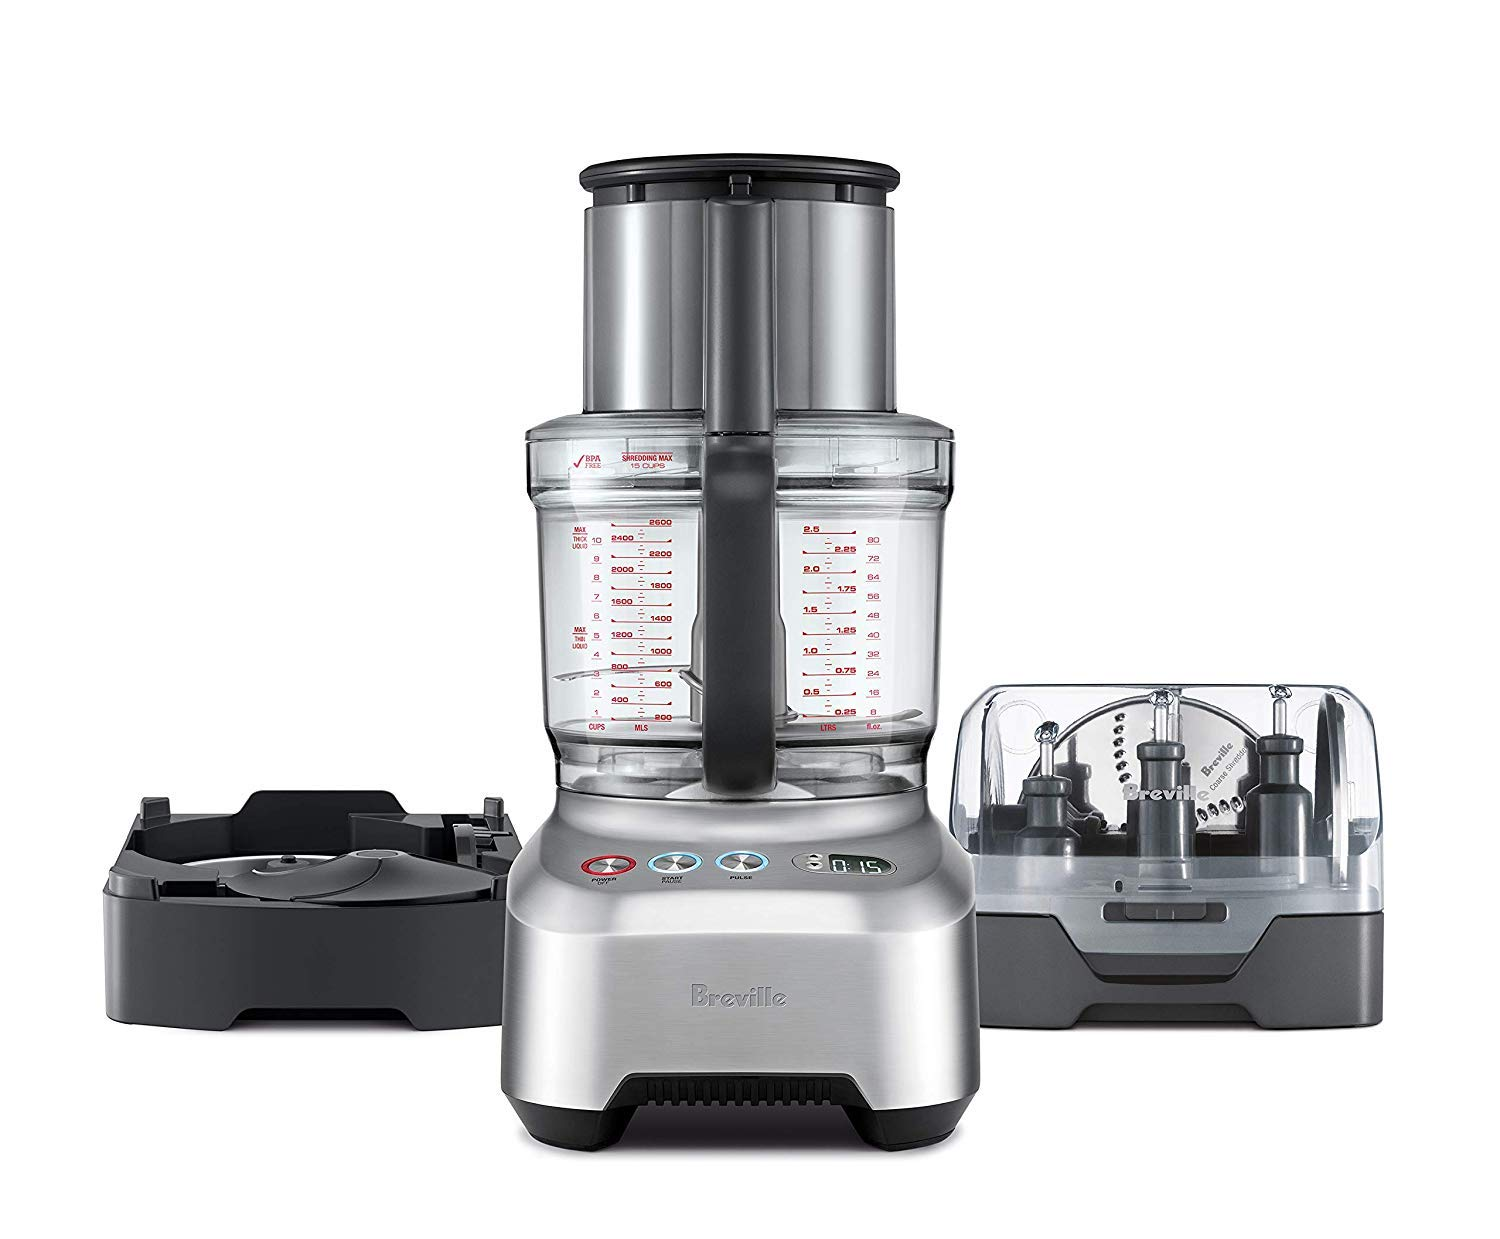 Breville Sous Chef 16 Peel & Dice All-In-One Food Processor